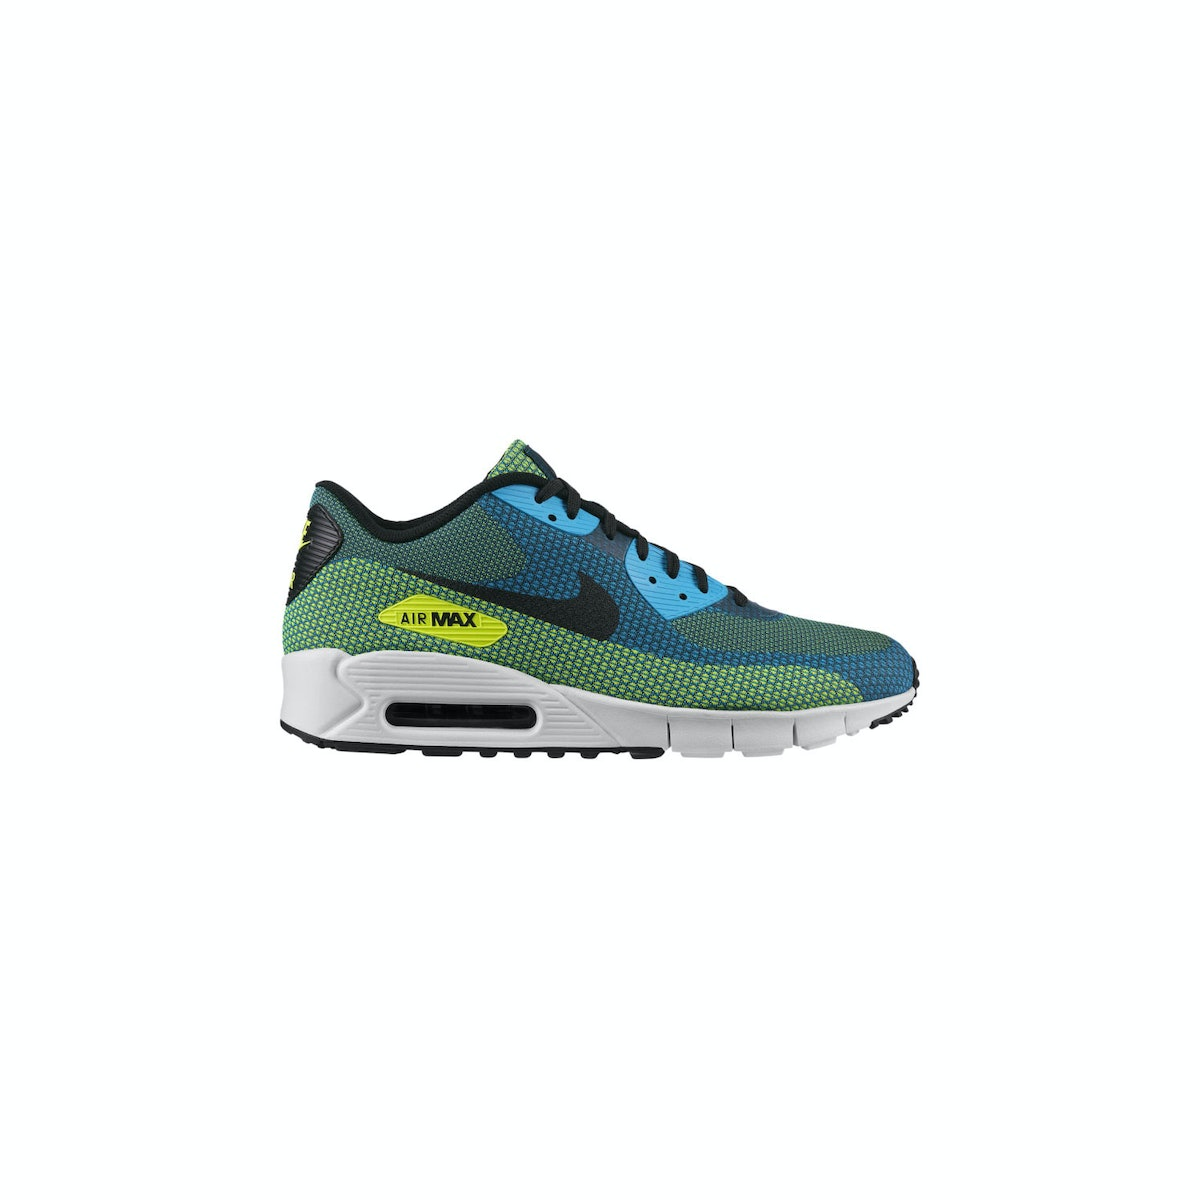 I confess that I own about 5 pairs of Nikes and I am already thinking about adding these to my collection!       *Nike Air, $150, [nike.com](http://www.nike.com/us/en_us/).*